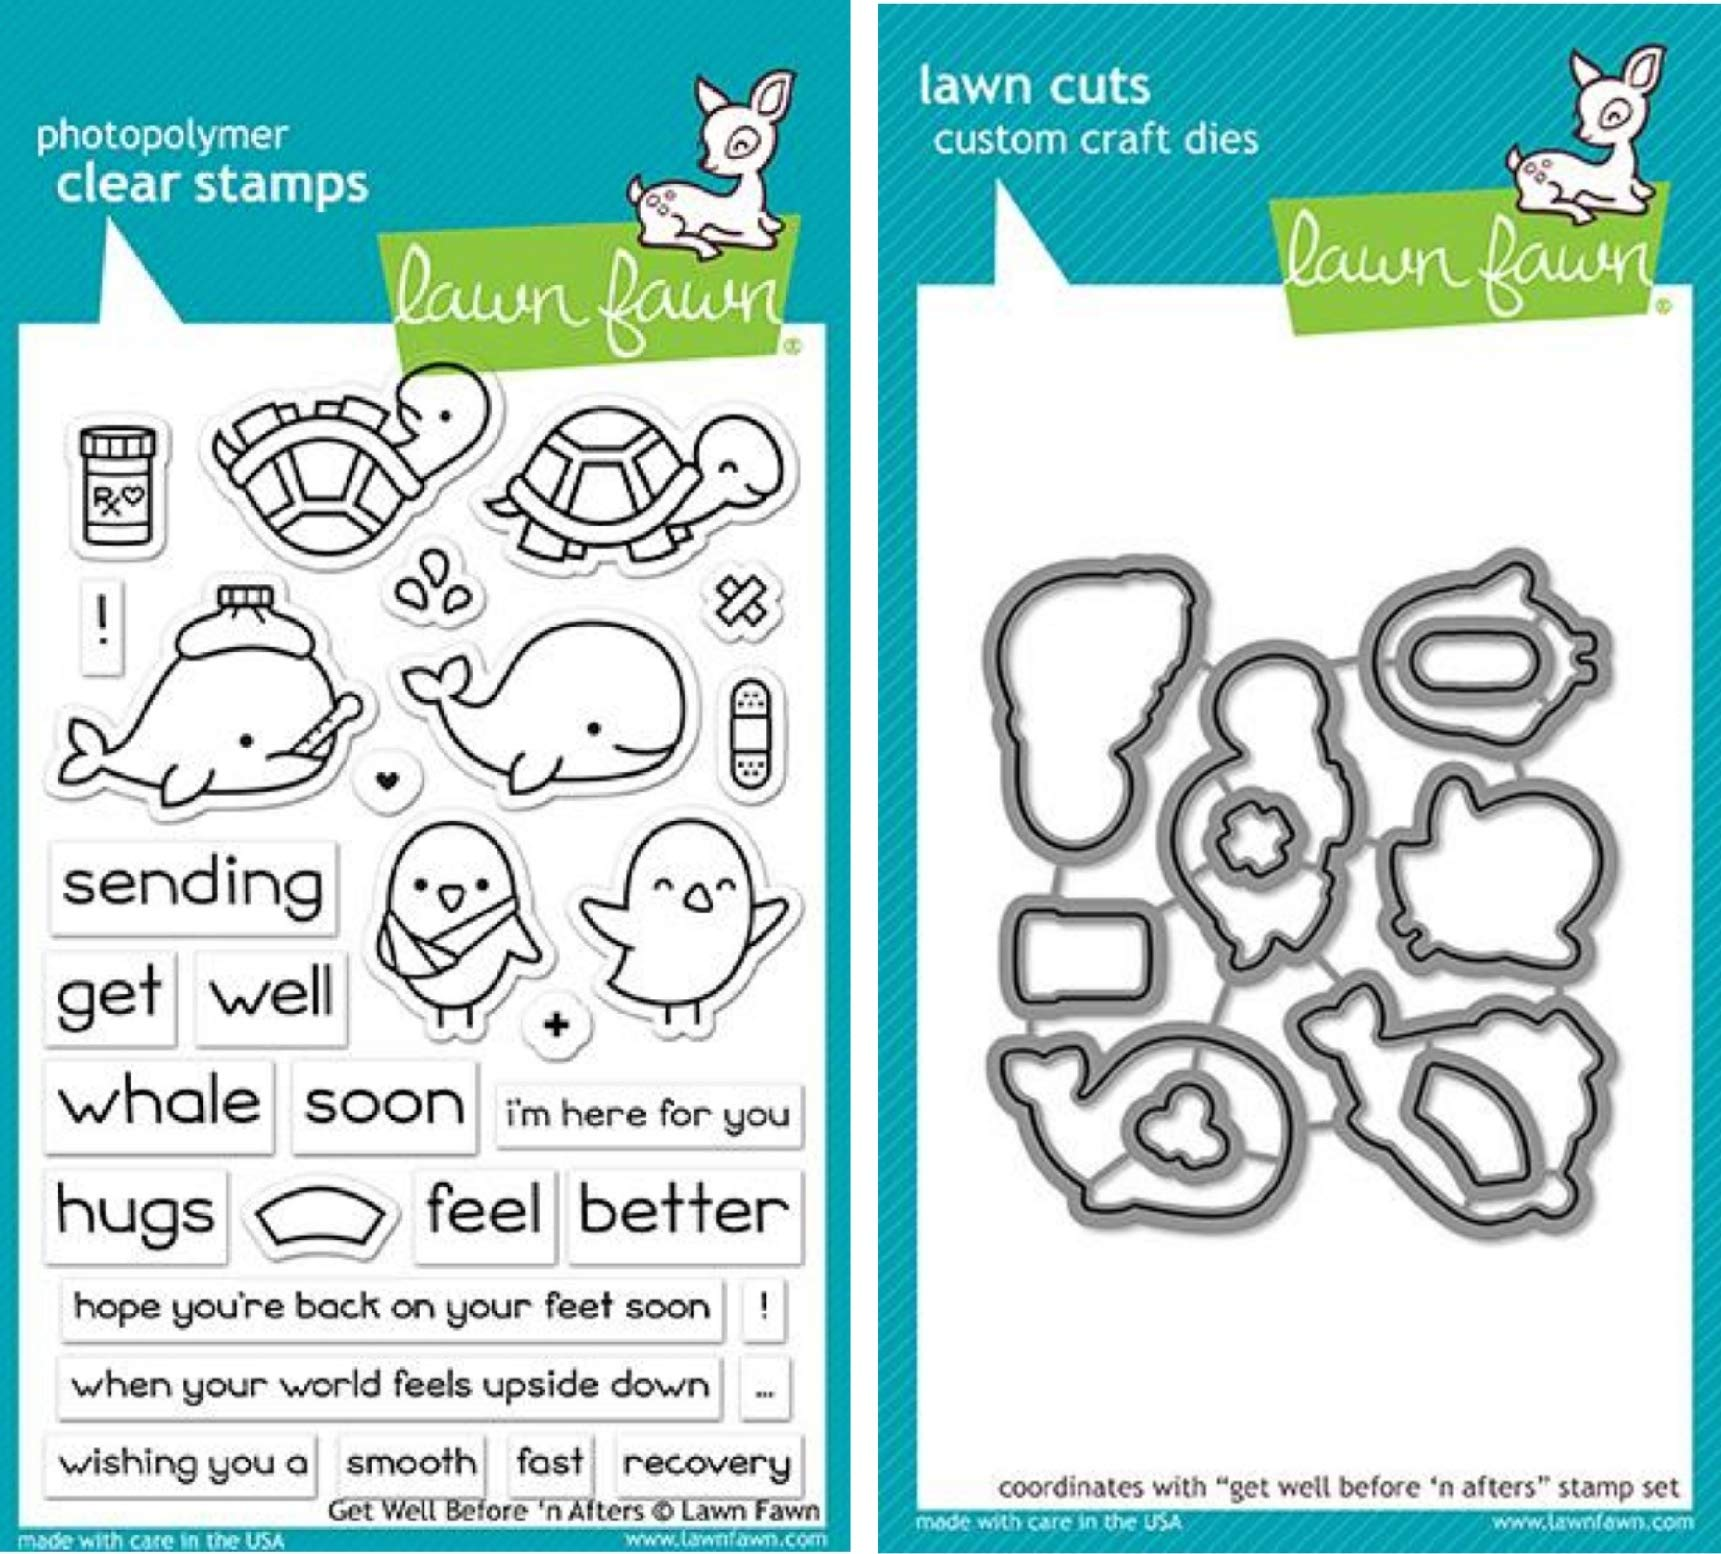 Lawn Fawn Get Well Before 'n Afters 4''x6'' Clear Stamp Set and Matching Lawn Cuts Die Set (LF1886, LF1887), Bundle of Two Items